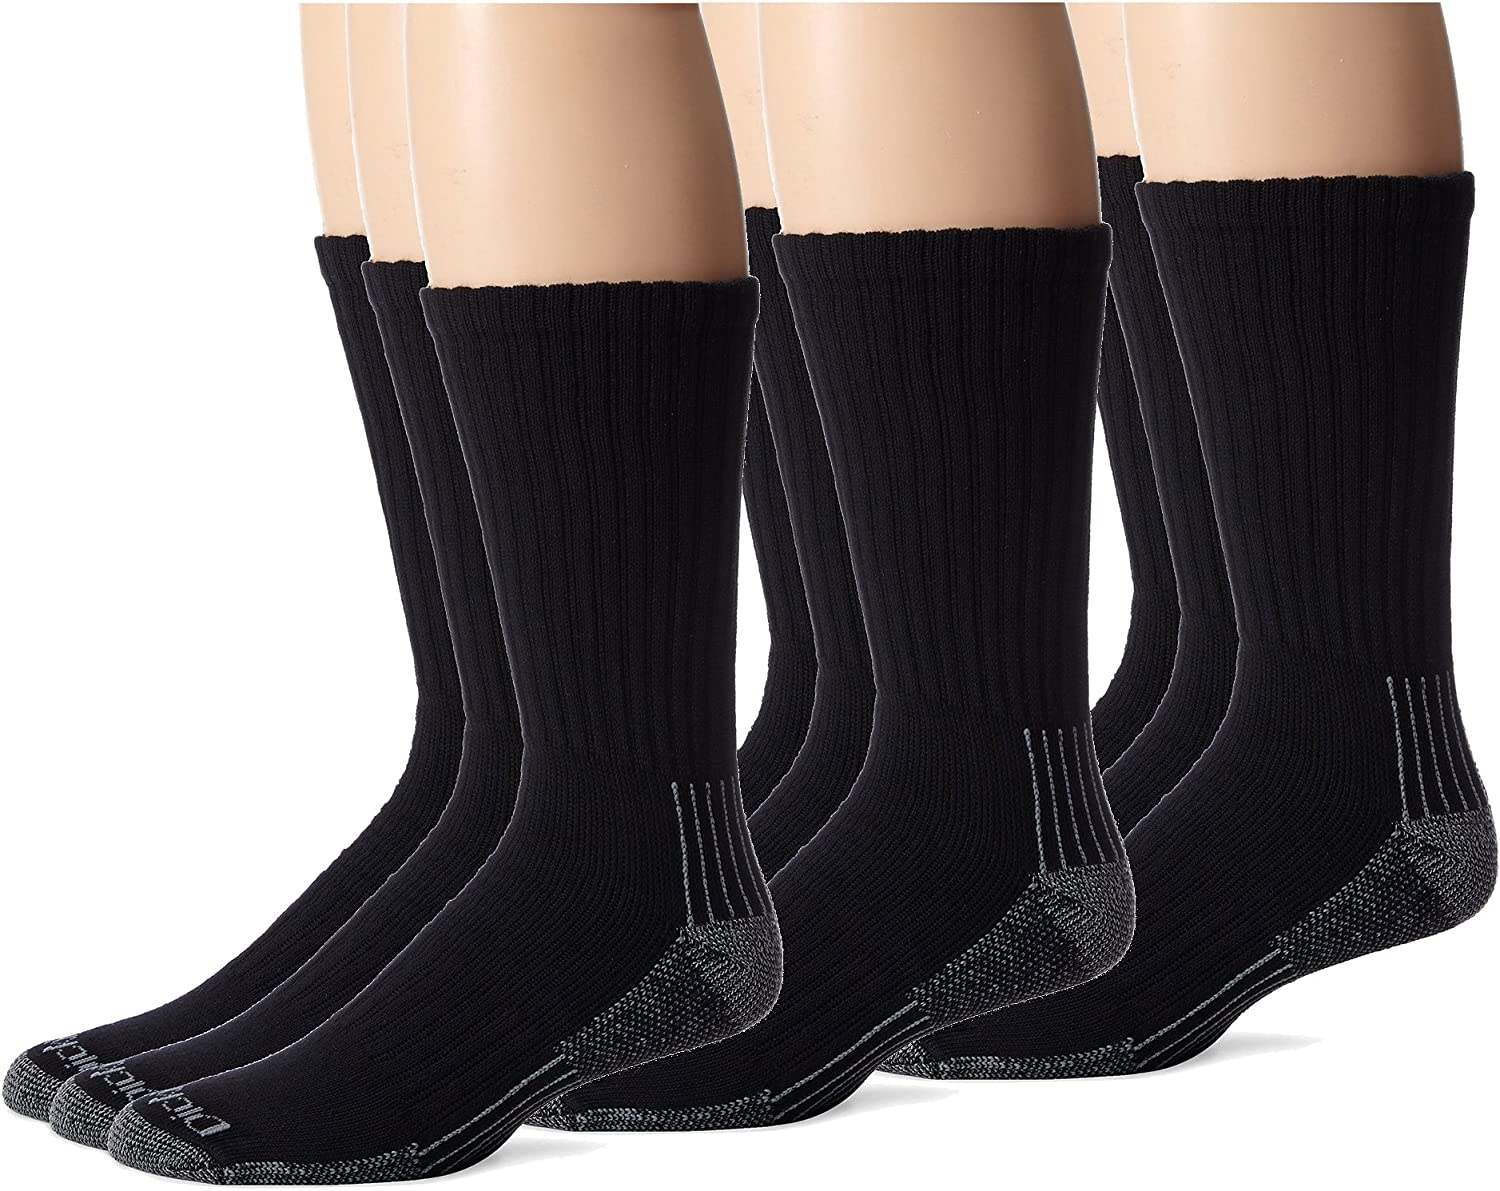 Dickies Mens Heavyweight Cushion with Ankle and Arch Compression Work Crew Socks